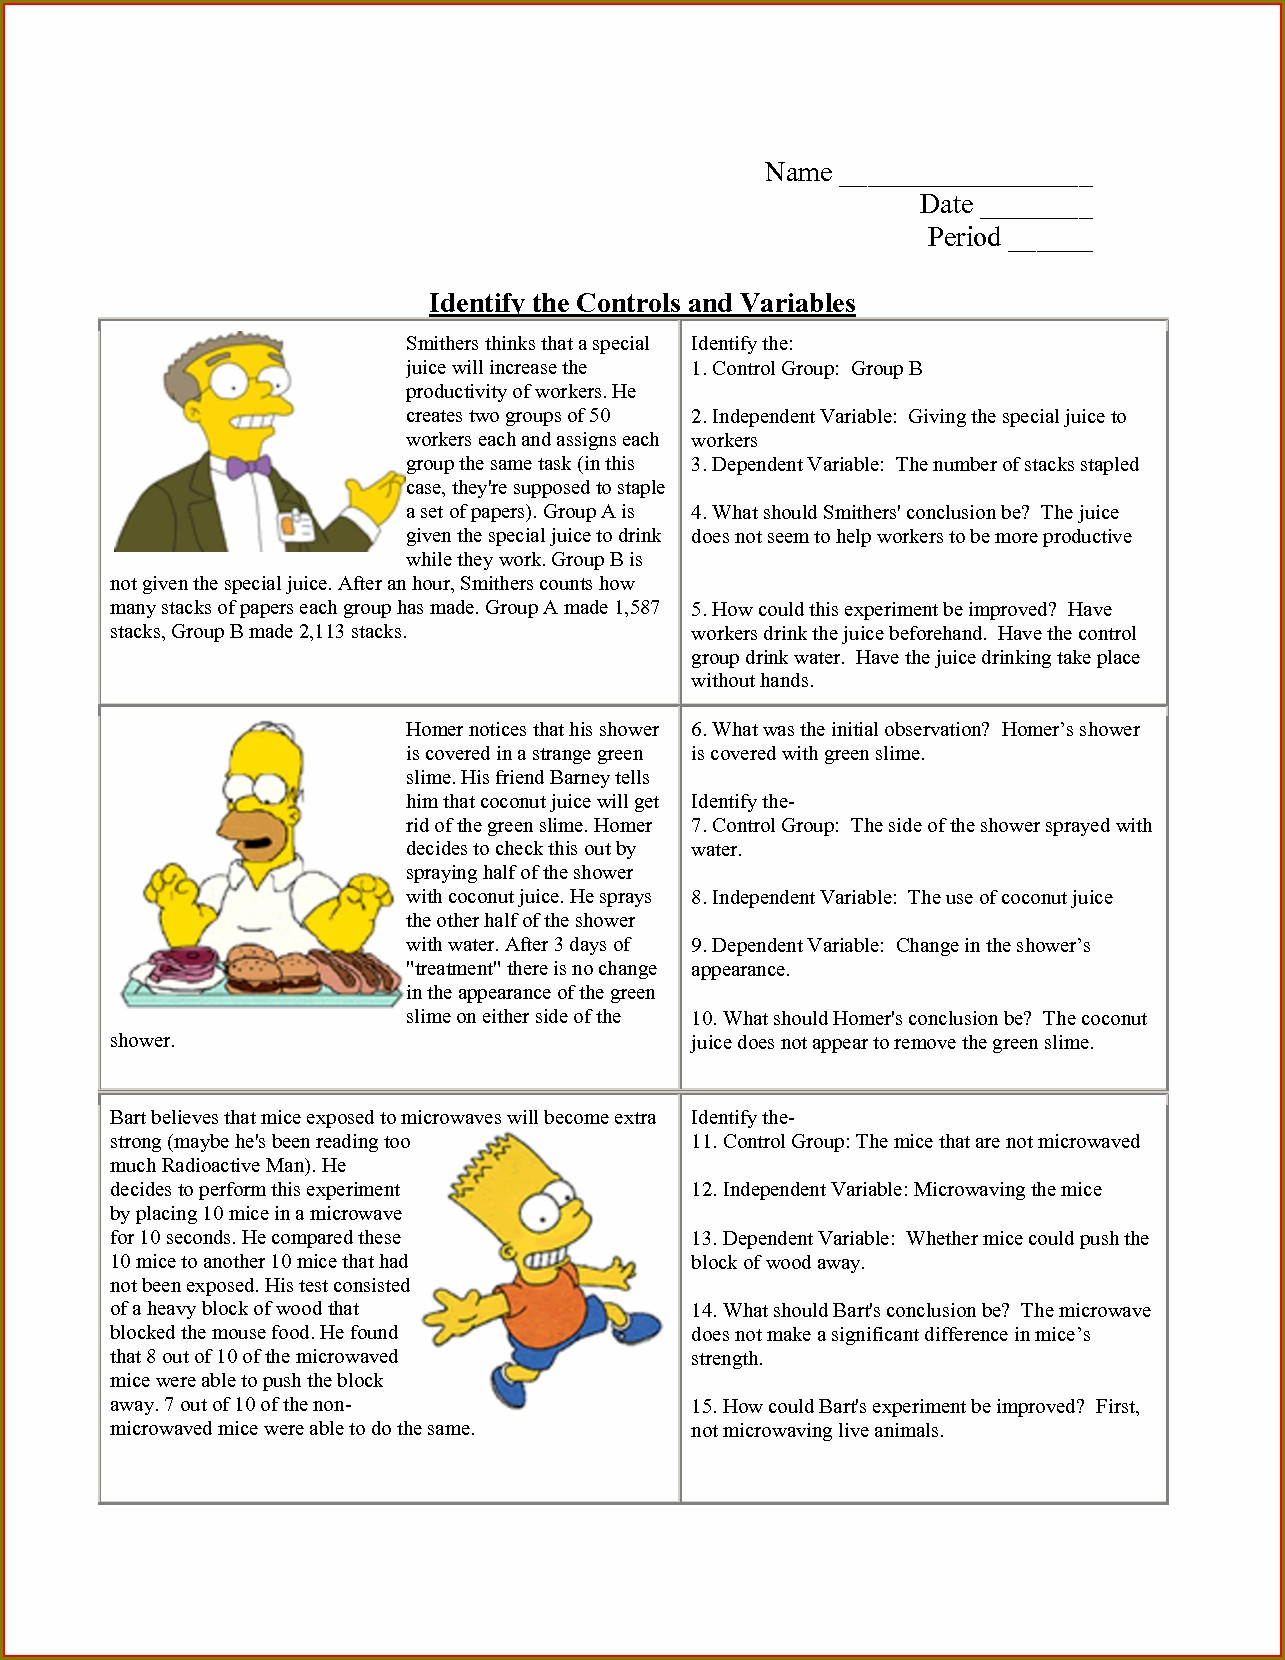 Scientific Method Identifying Variables Worksheet Answers